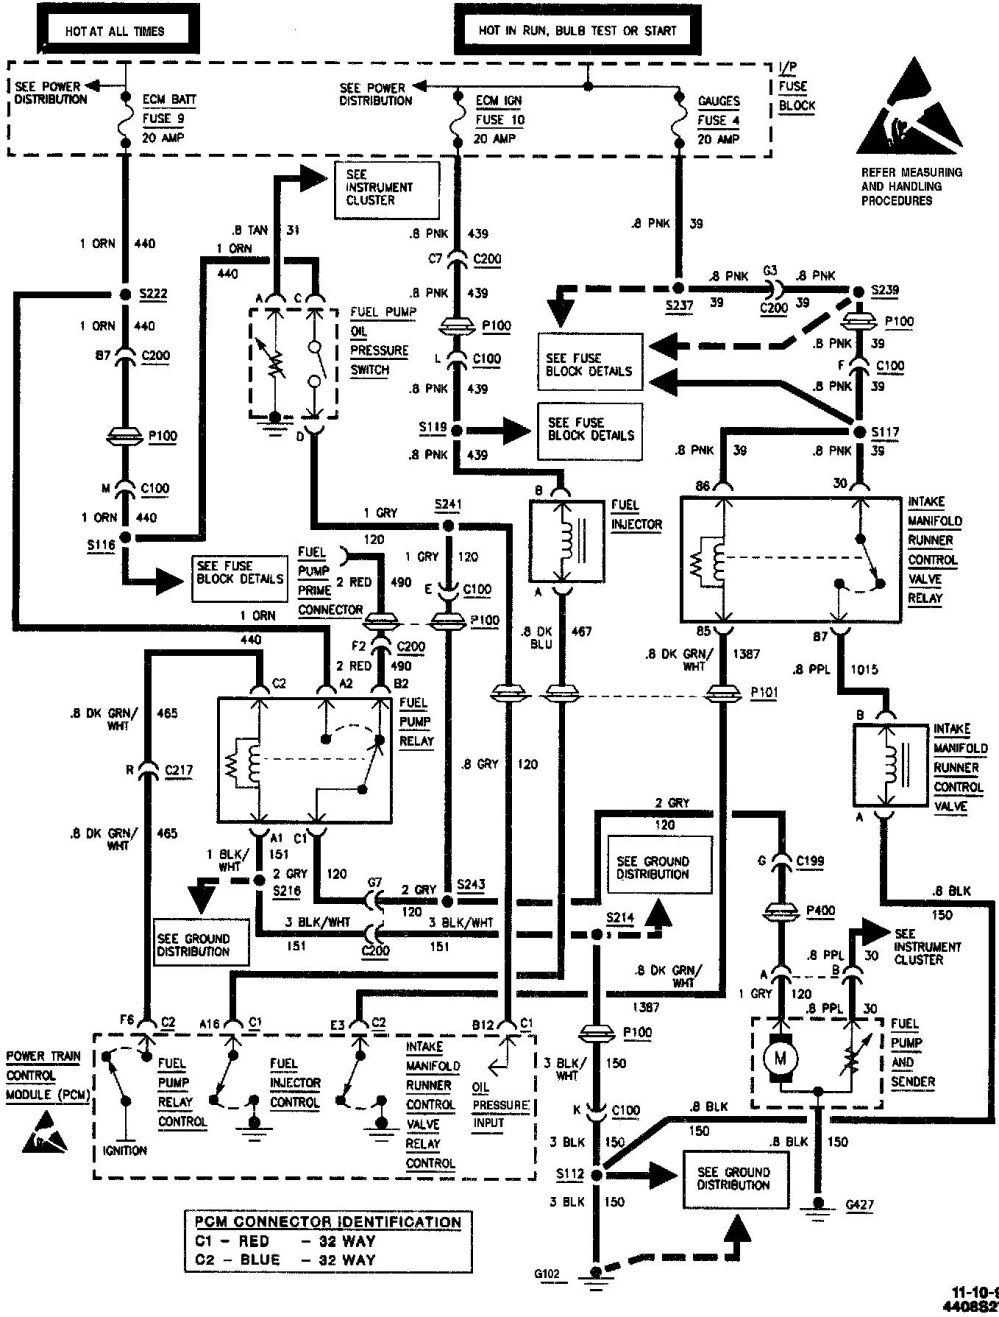 medium resolution of wiring diagram 2001 s10 zr2 wiring diagram paperwiring diagram 2001 s10 zr2 wiring diagram toolbox 01